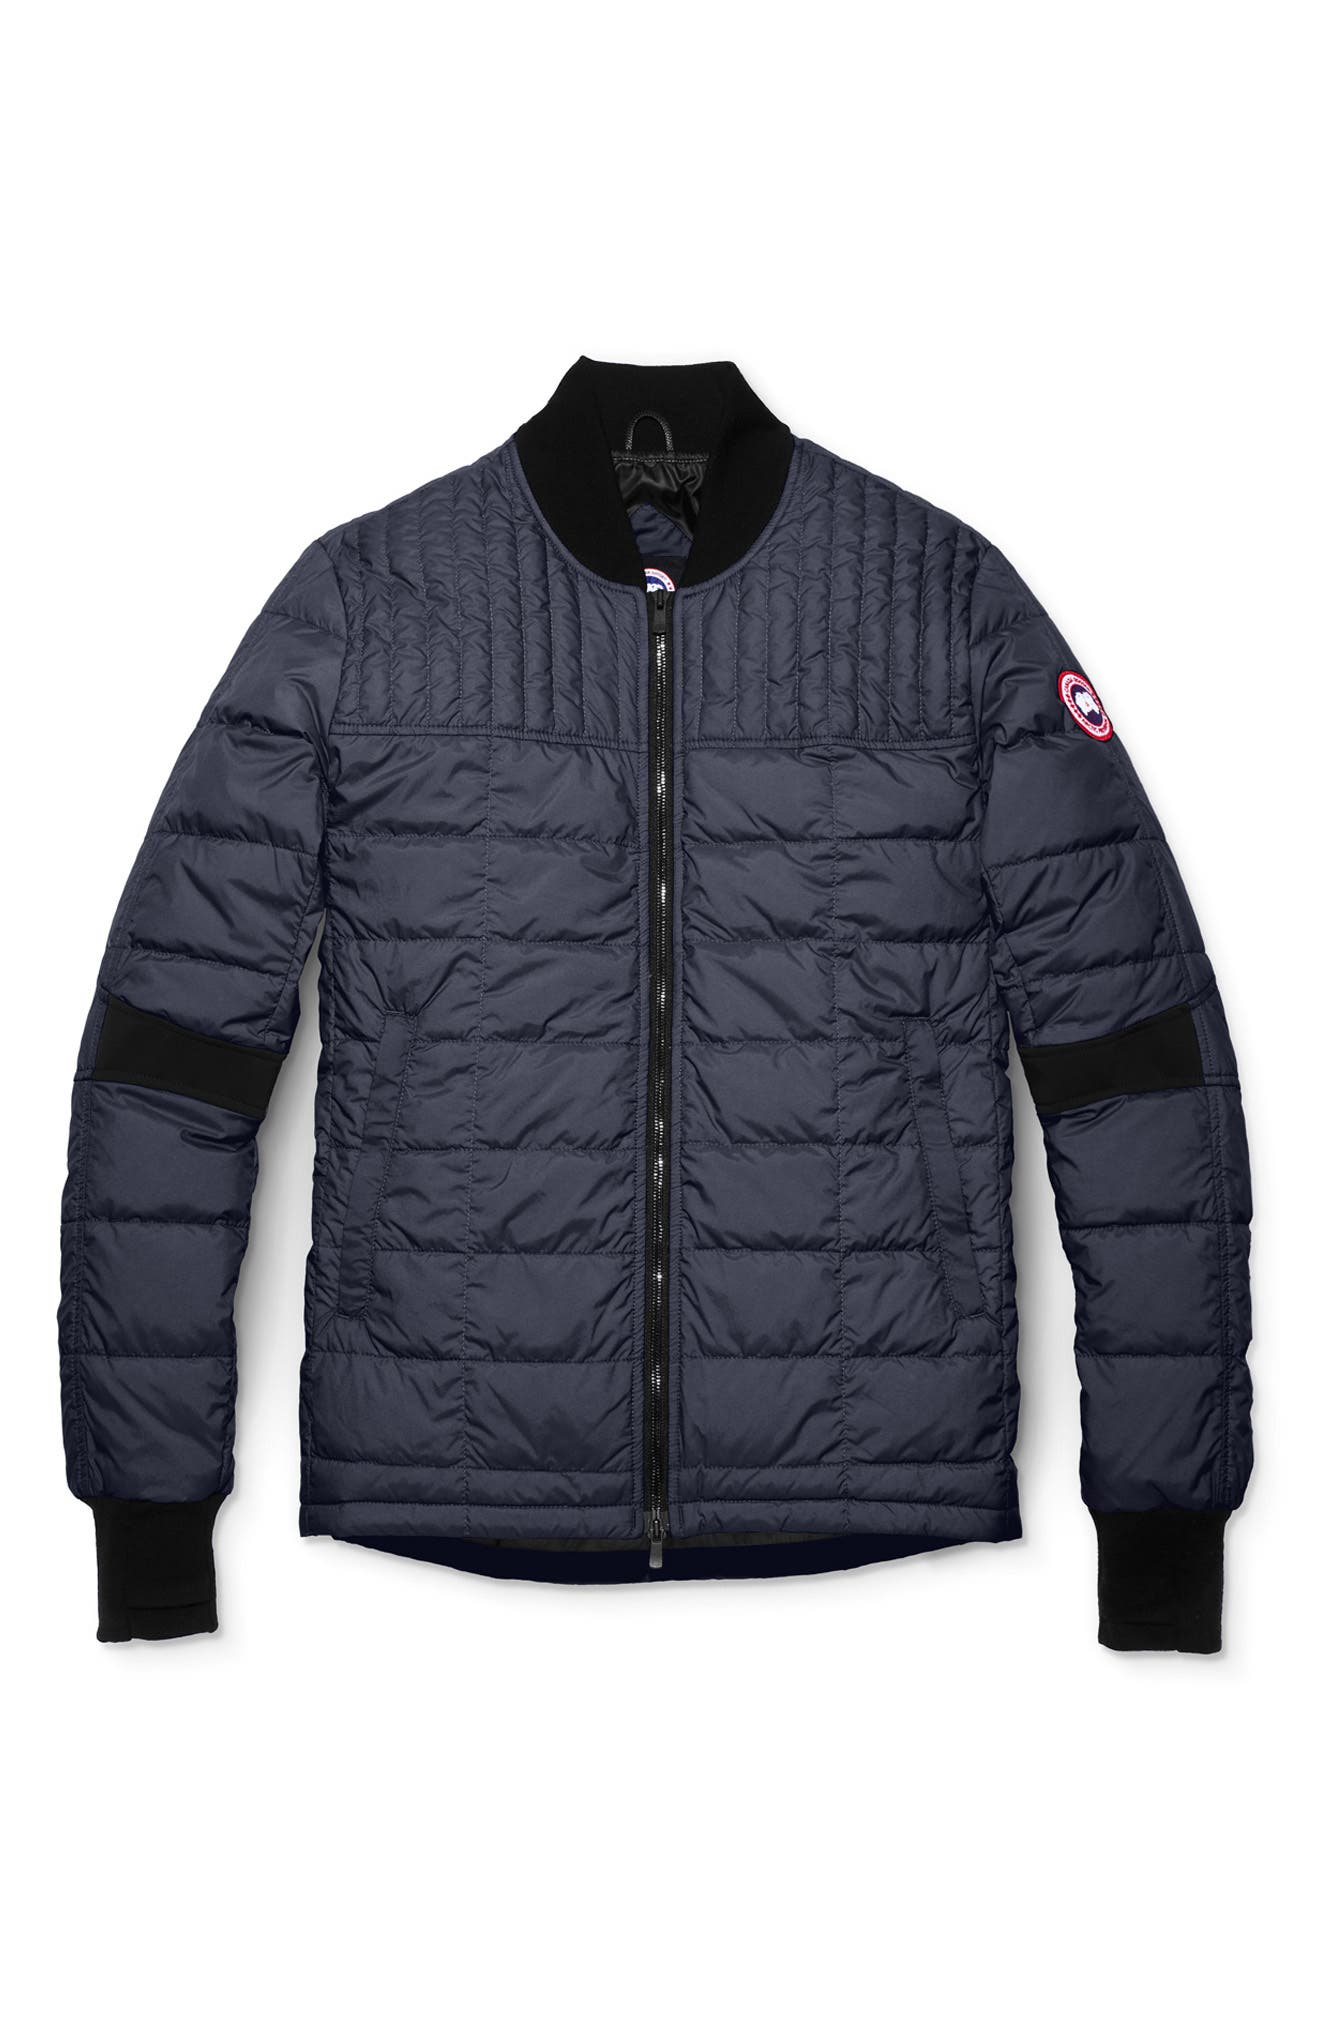 CANADA GOOSE Dunham Slim Fit Packable Down Jacket, Main, color, NAVY